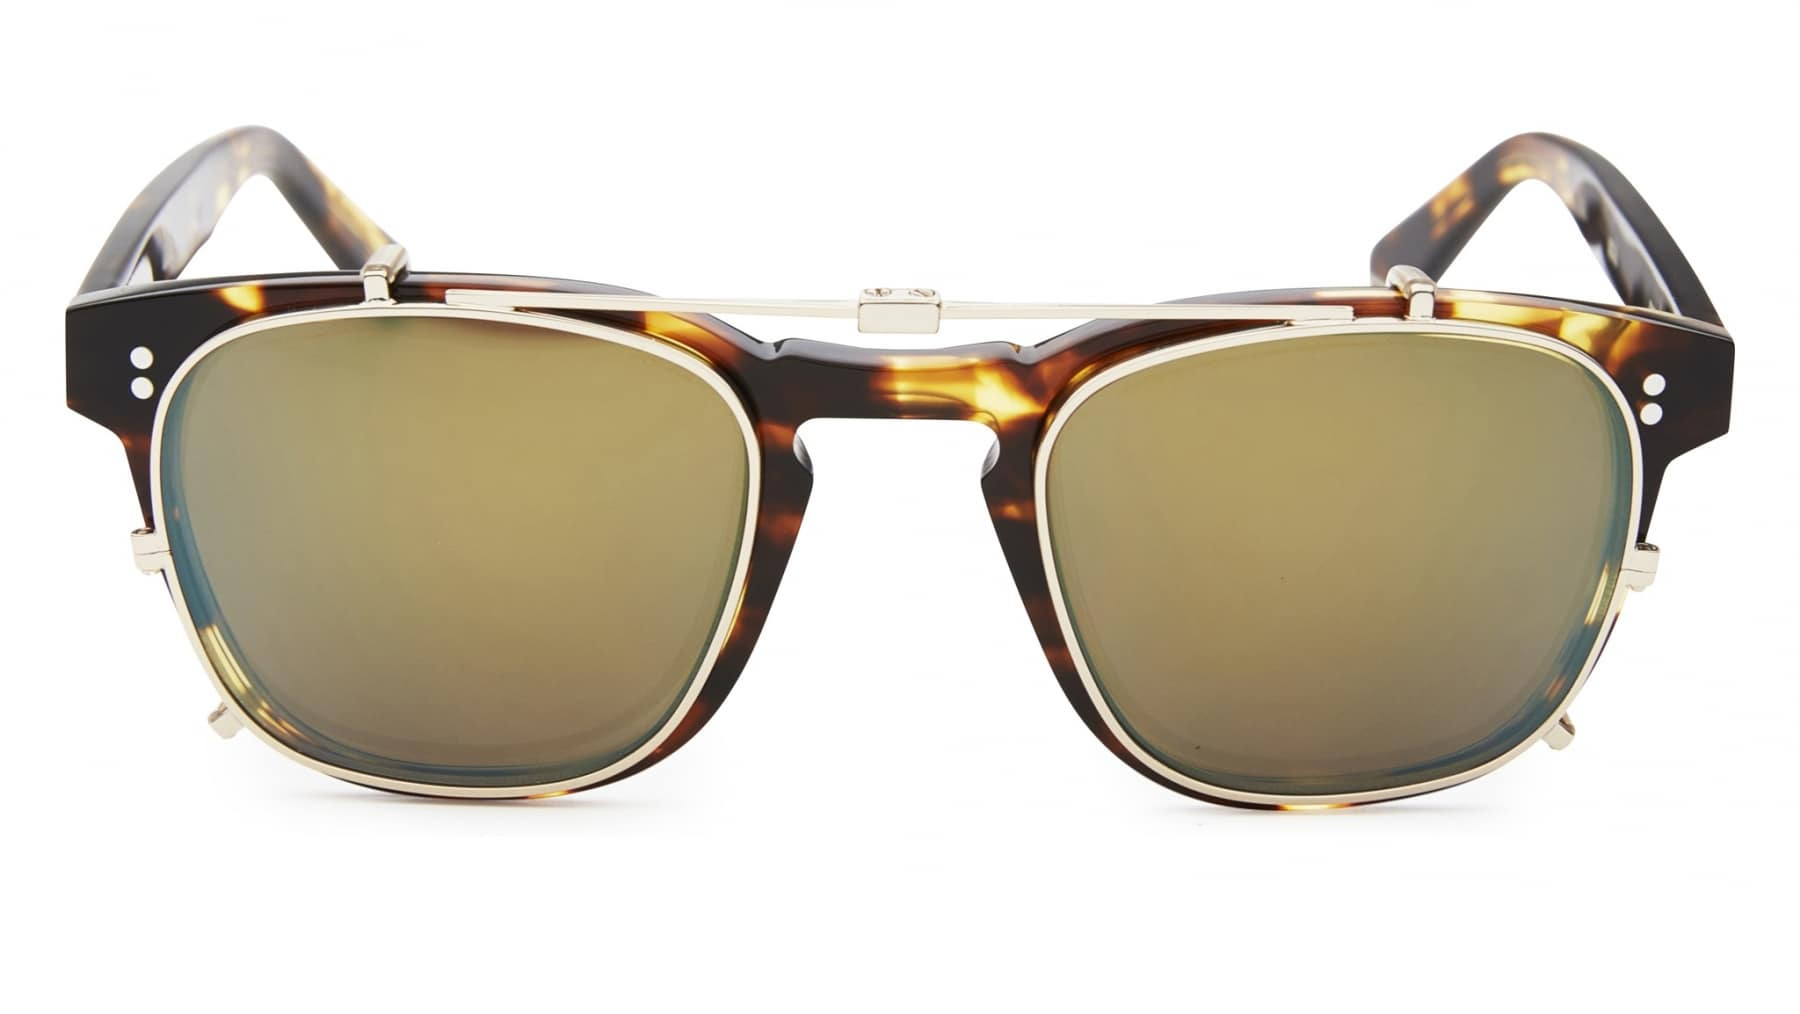 yachtmaster sunglasses frame